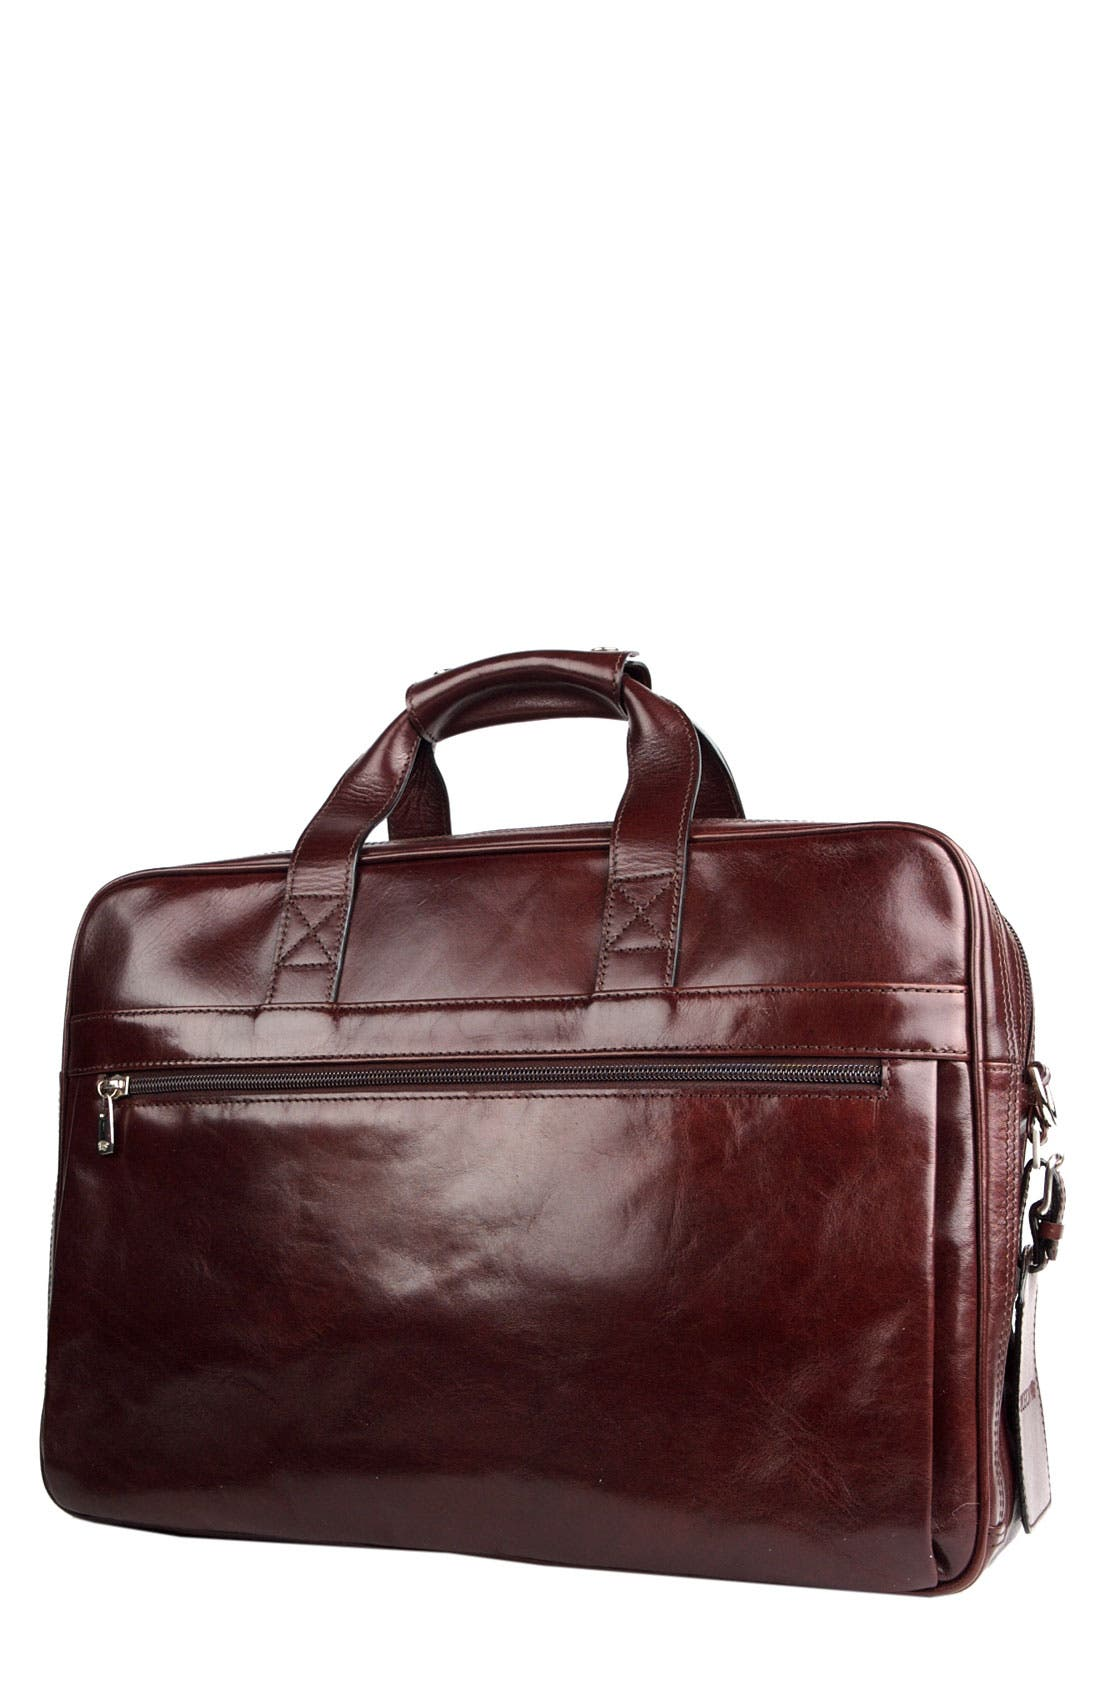 Double Compartment Leather Briefcase,                         Main,                         color, DARK BROWN